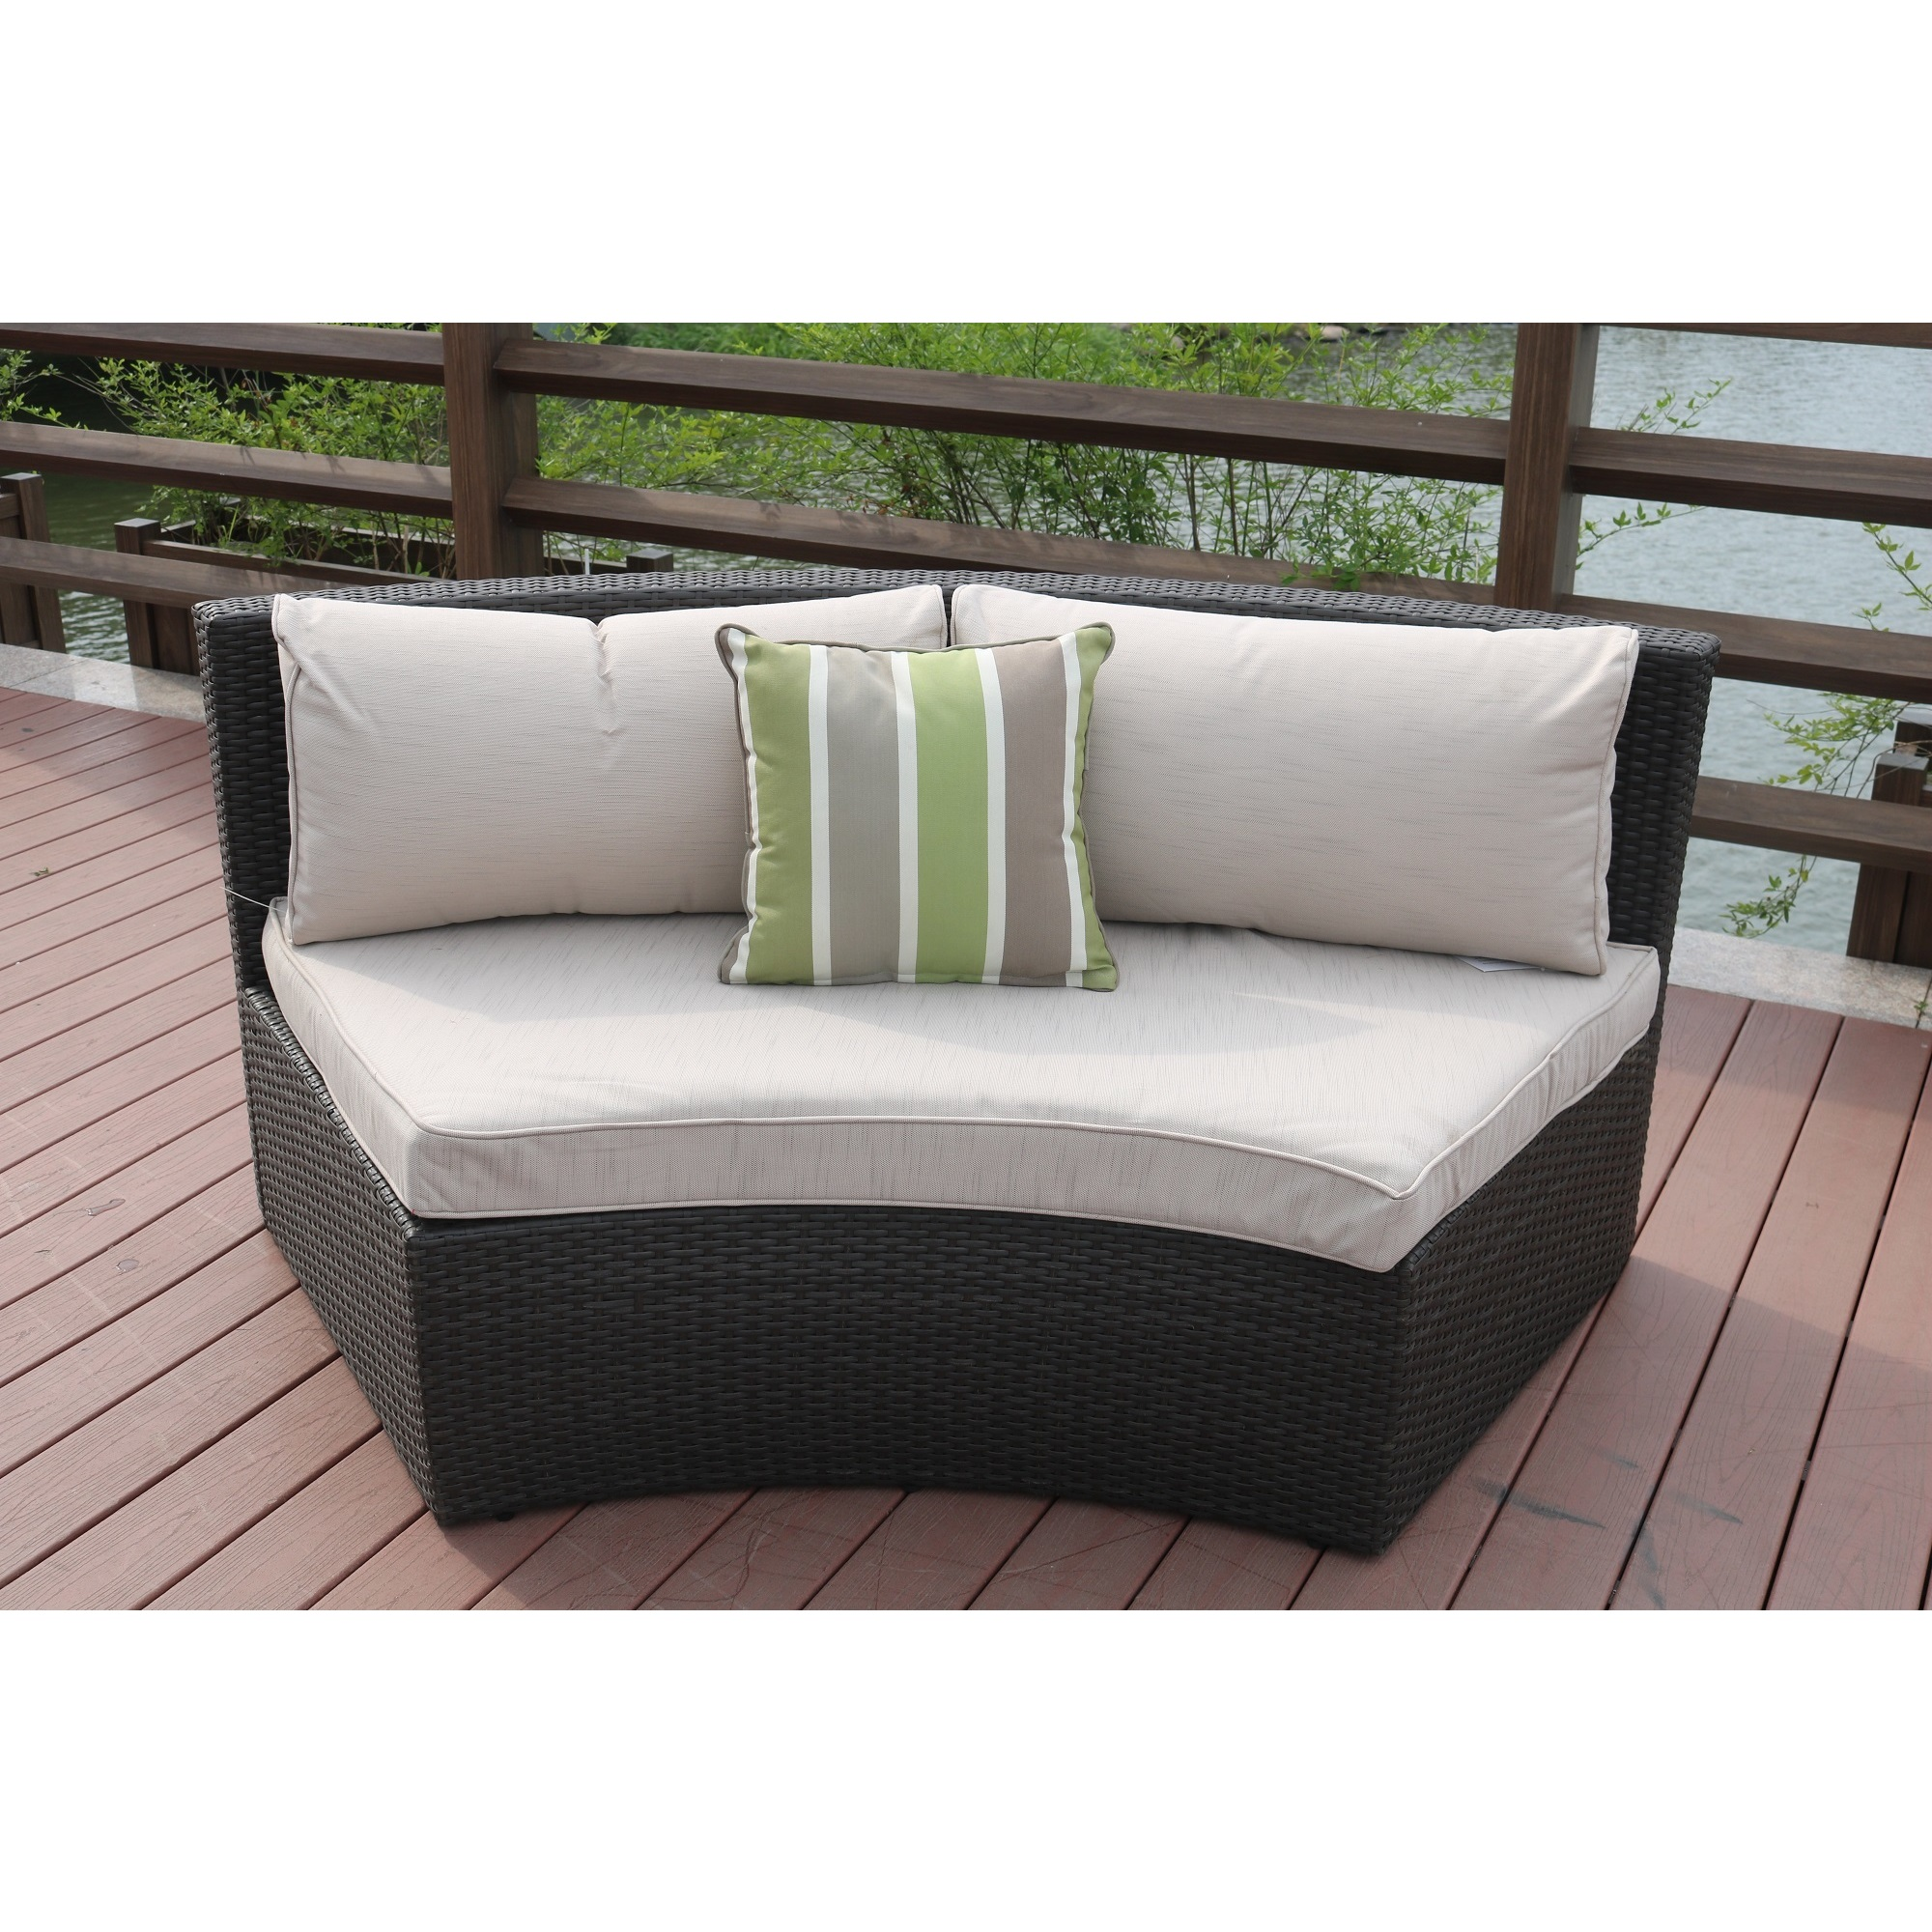 Shop Half Moon 6 Piece Outdoor Curved Sectional Sofa With Side Table Set By  Direct Wicker   On Sale   Free Shipping Today   Overstock.com   16899729